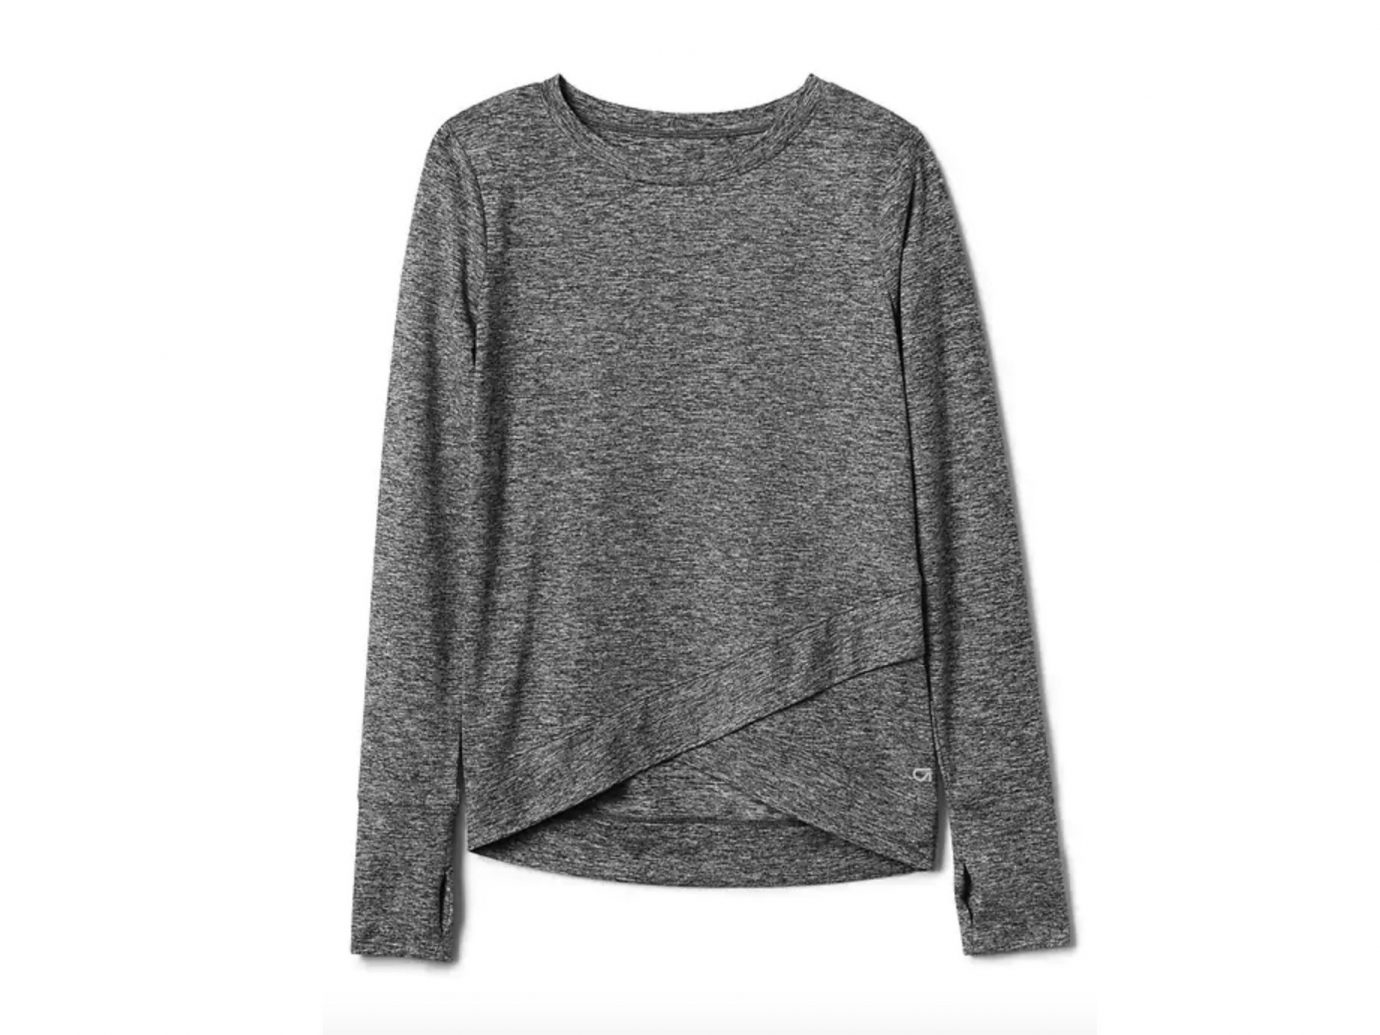 Health + Wellness Style + Design Travel Shop clothing sleeve long sleeved t shirt neck woolen sweater product